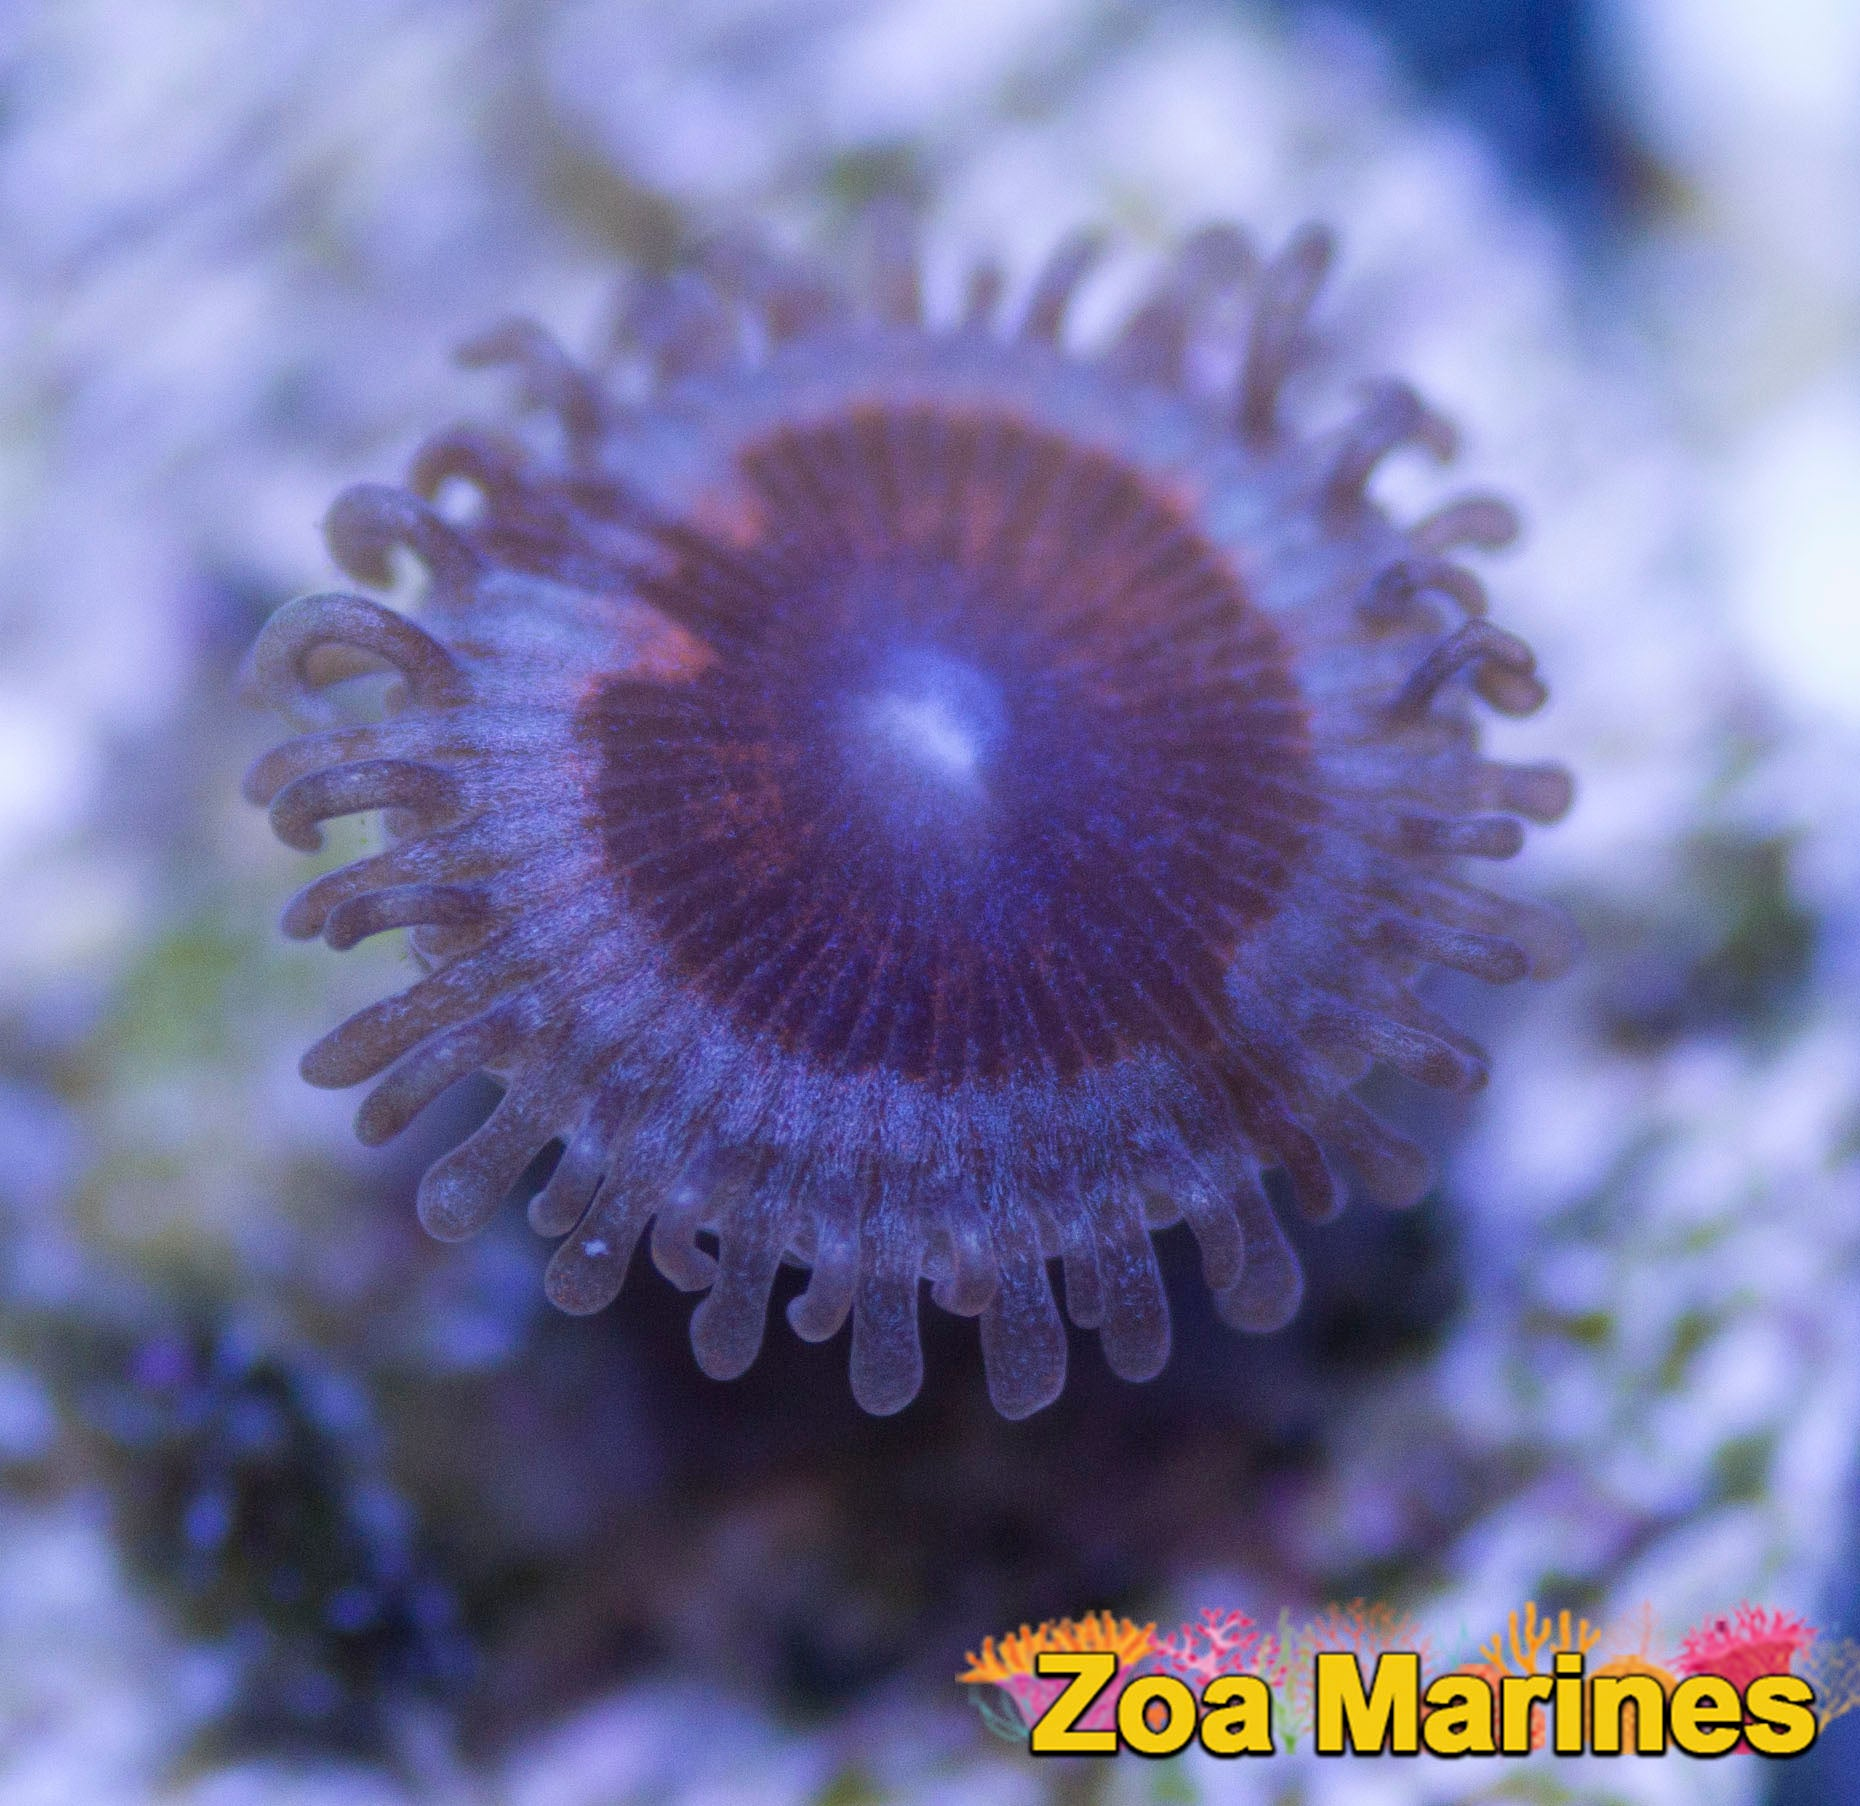 Zoa 'Armageddon' 1 head on Plug